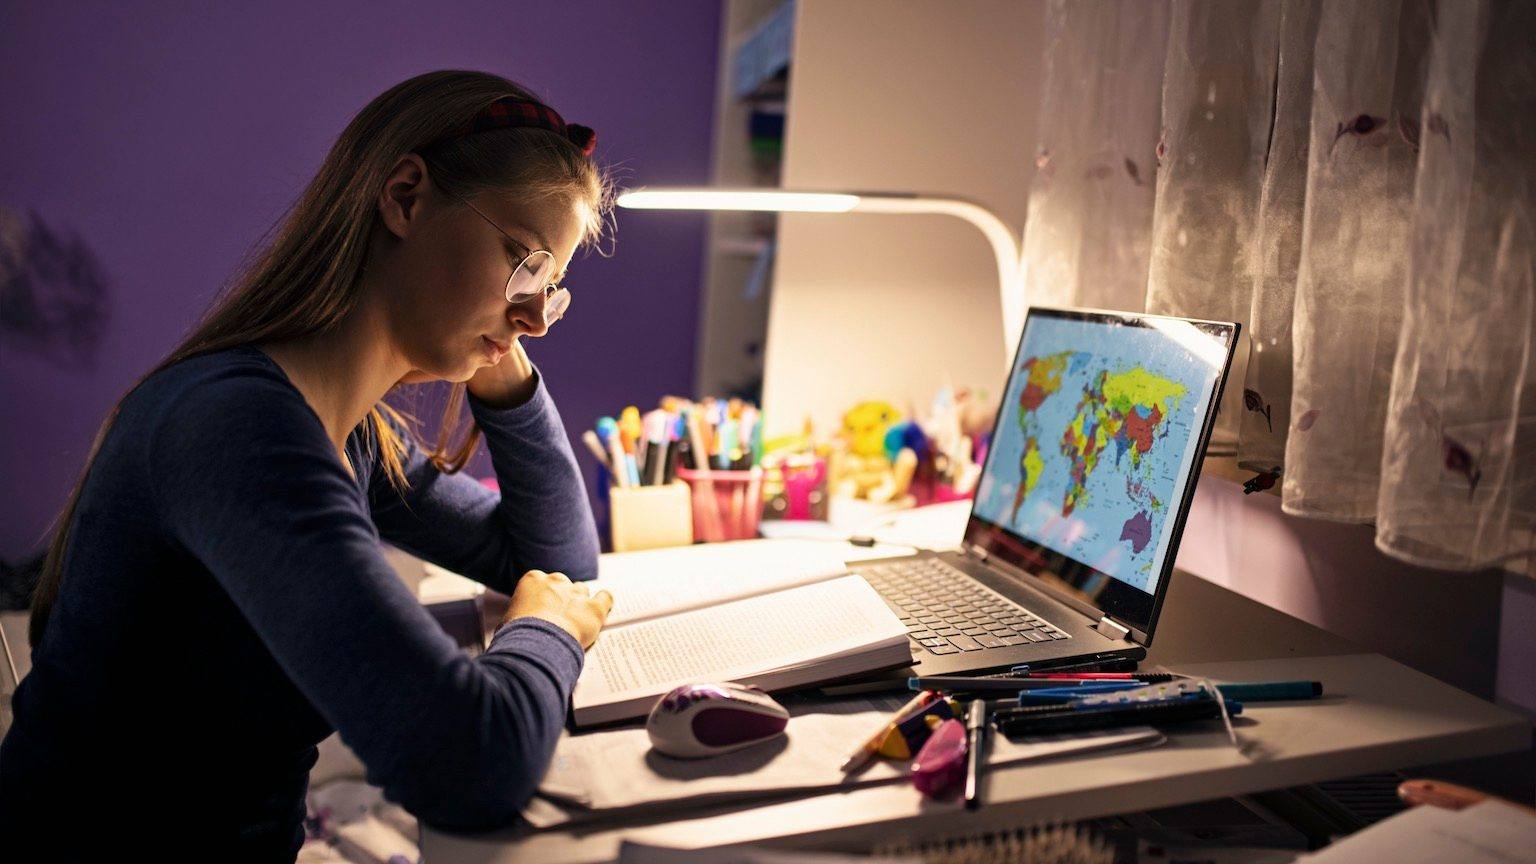 Teenage girl studying at her desk in her room. She is using task lighting to save the energy.